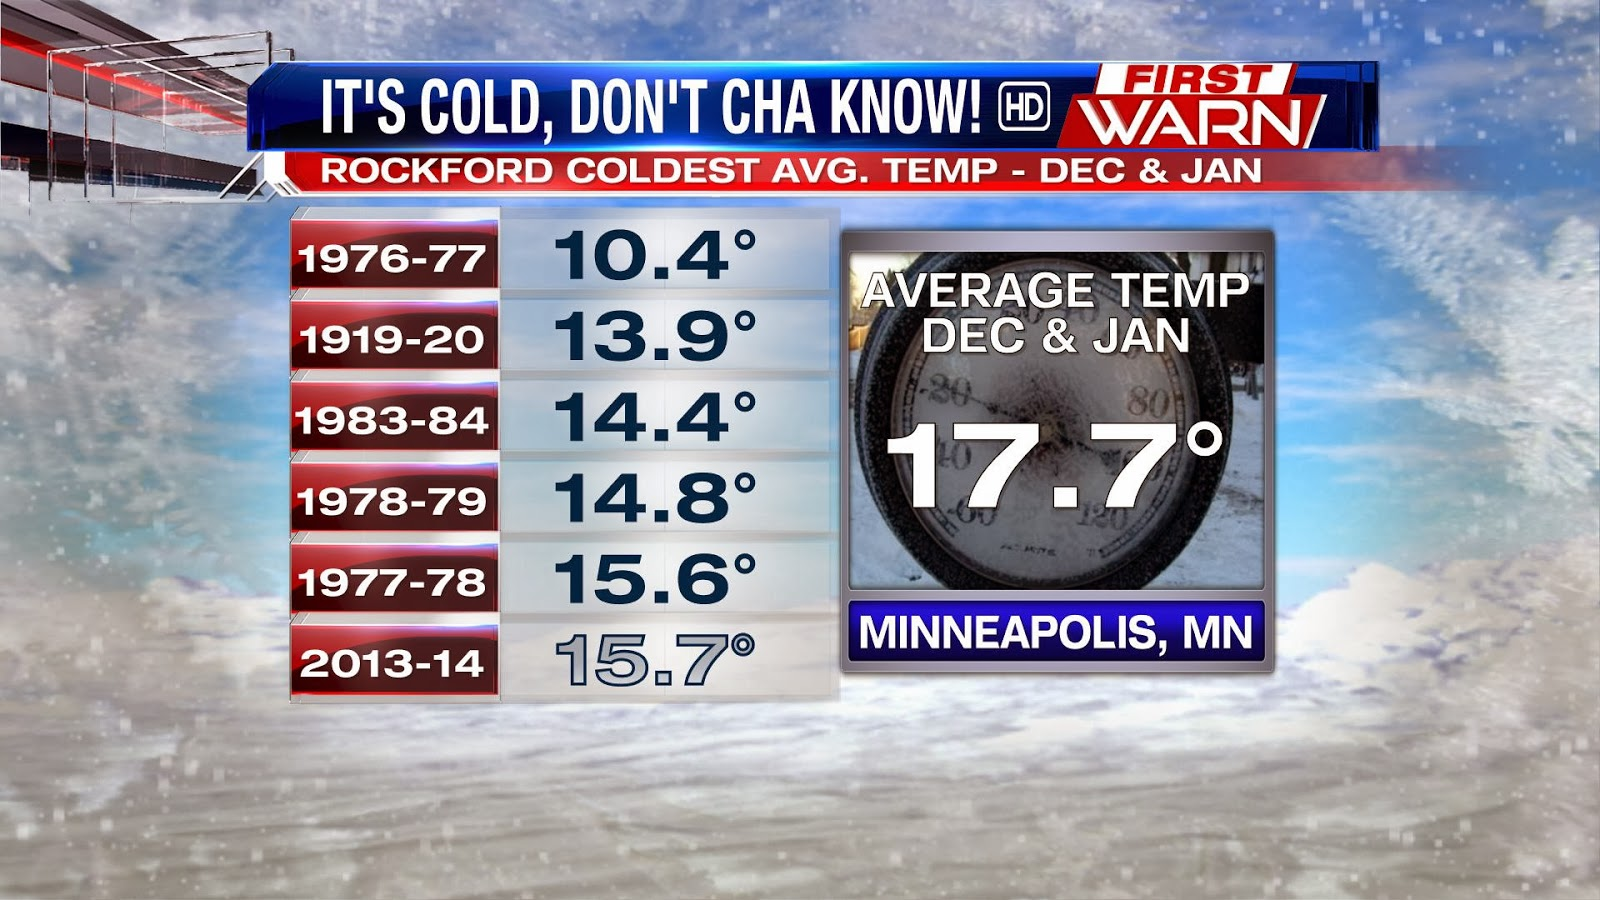 Average temperatures minneapolis - The Average Temp For Minneapolis Minnesota Through The First Two Months Of Winter Is 17 7 That S Right We Ve Been Colder Than A Normal Minnesota